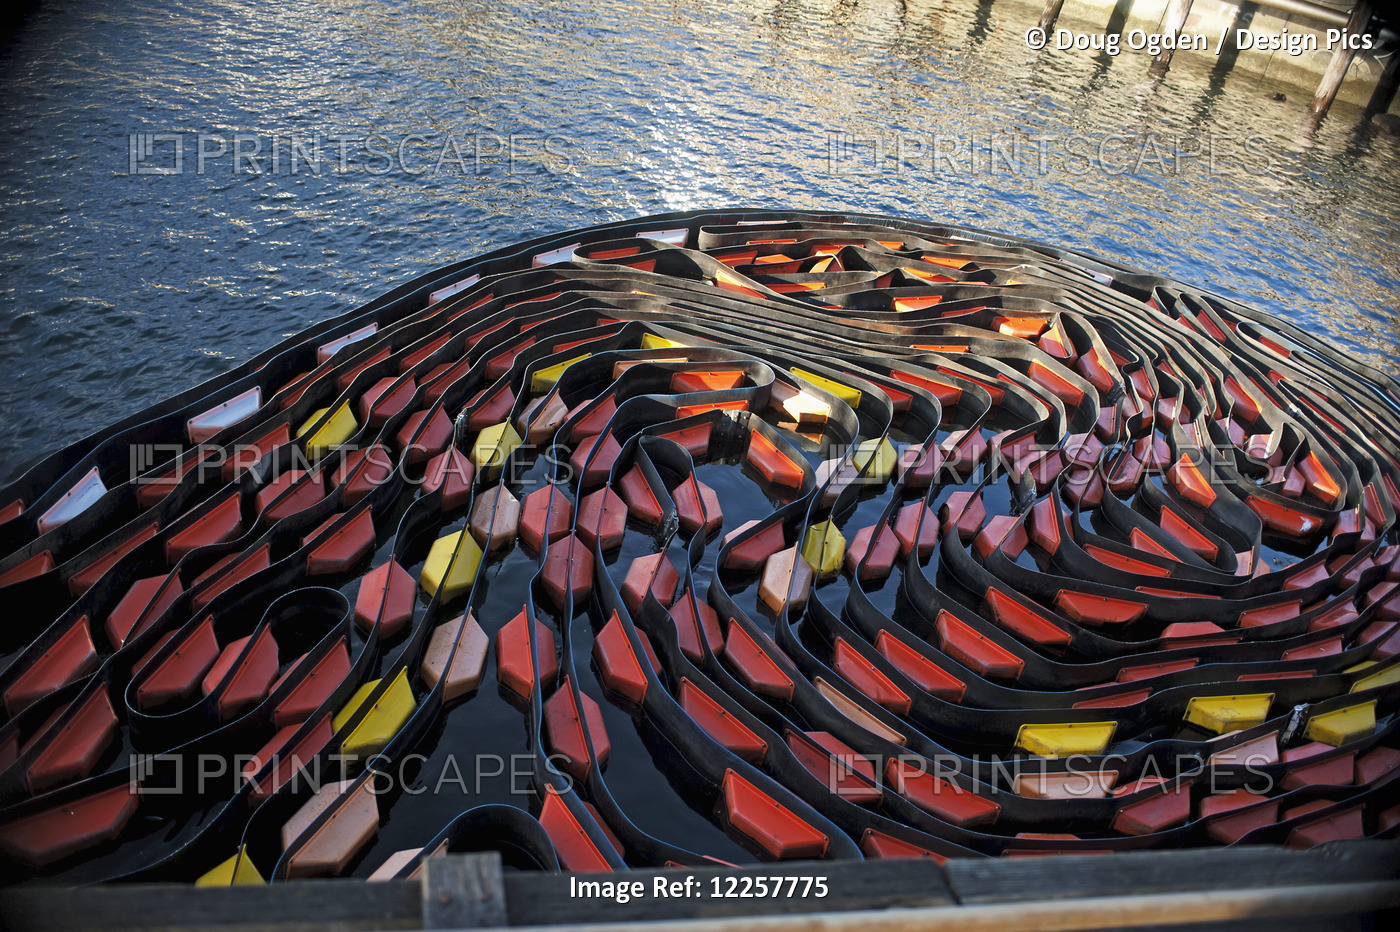 A Colorful Coiled Oil Boom At The Seattle Waterfront Piers, Washington, USA